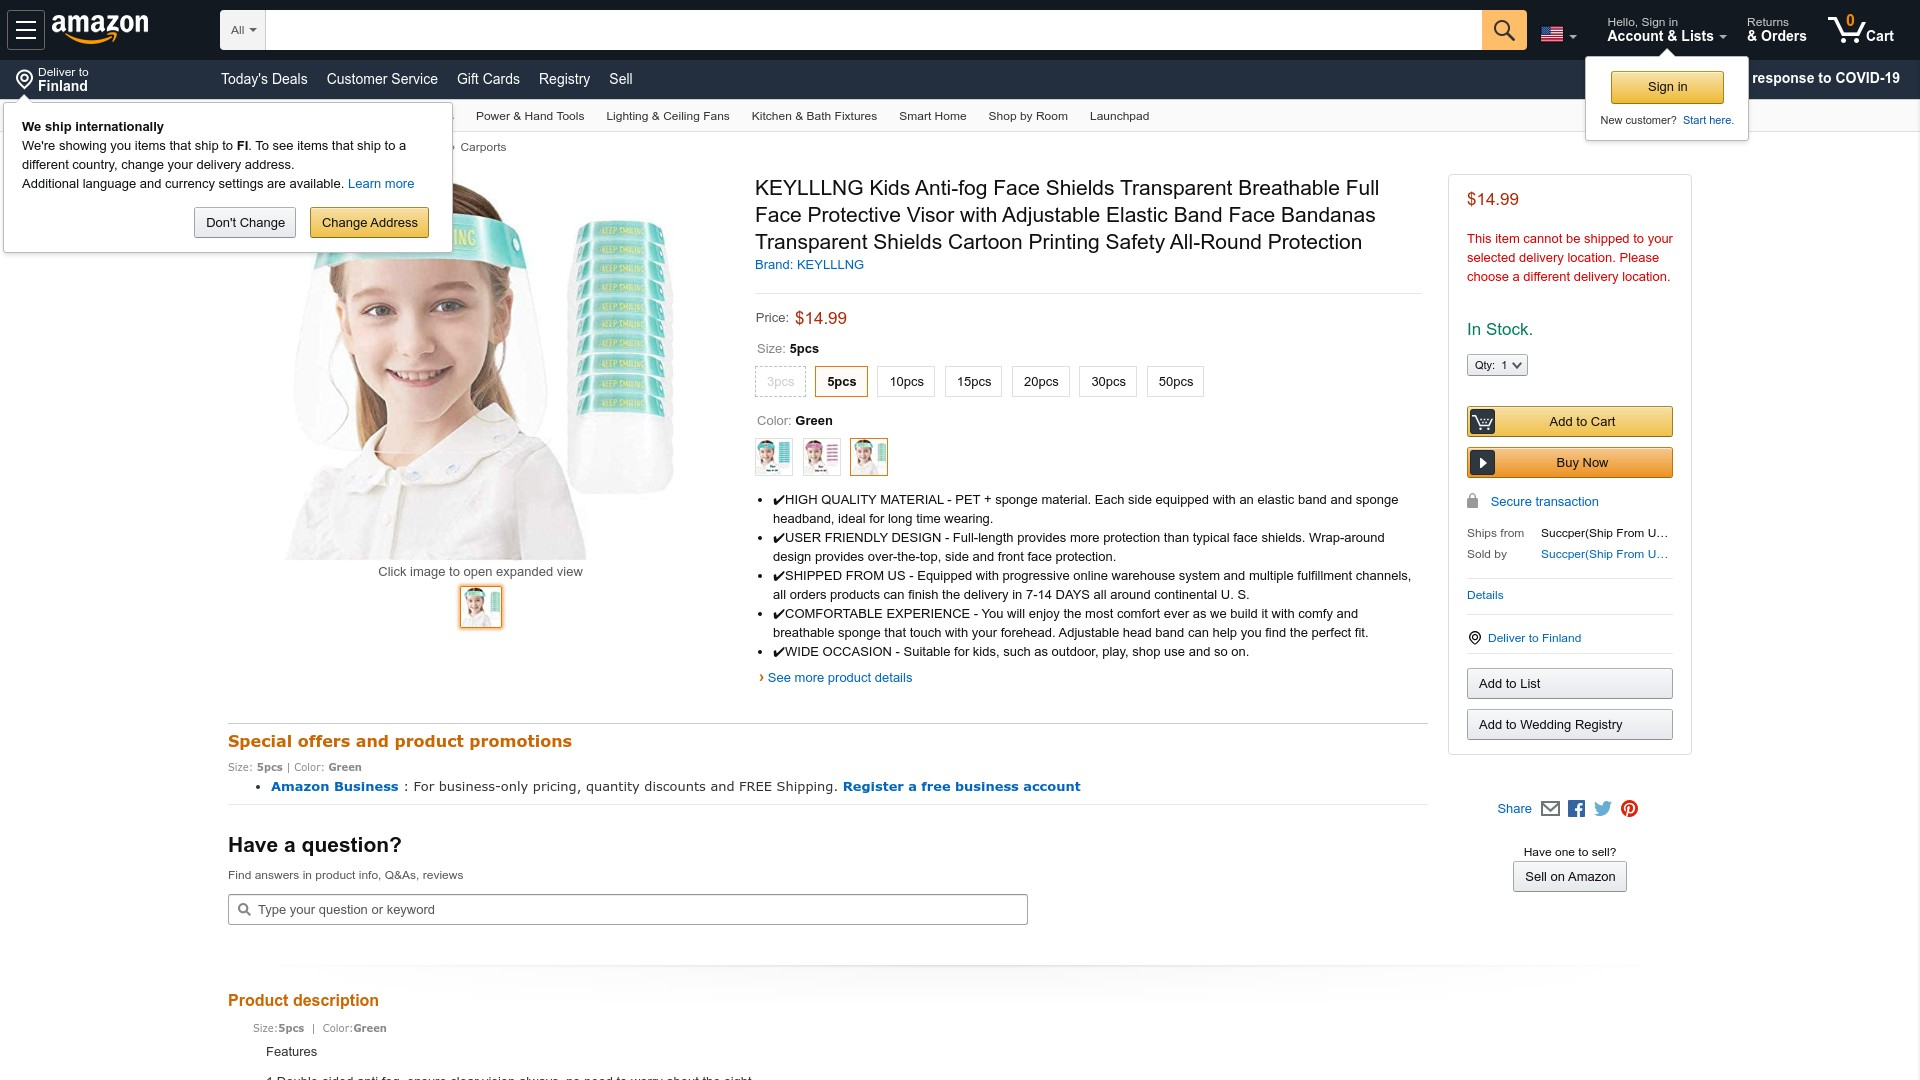 Is Amazon Keylllng Face Shield a Scam?